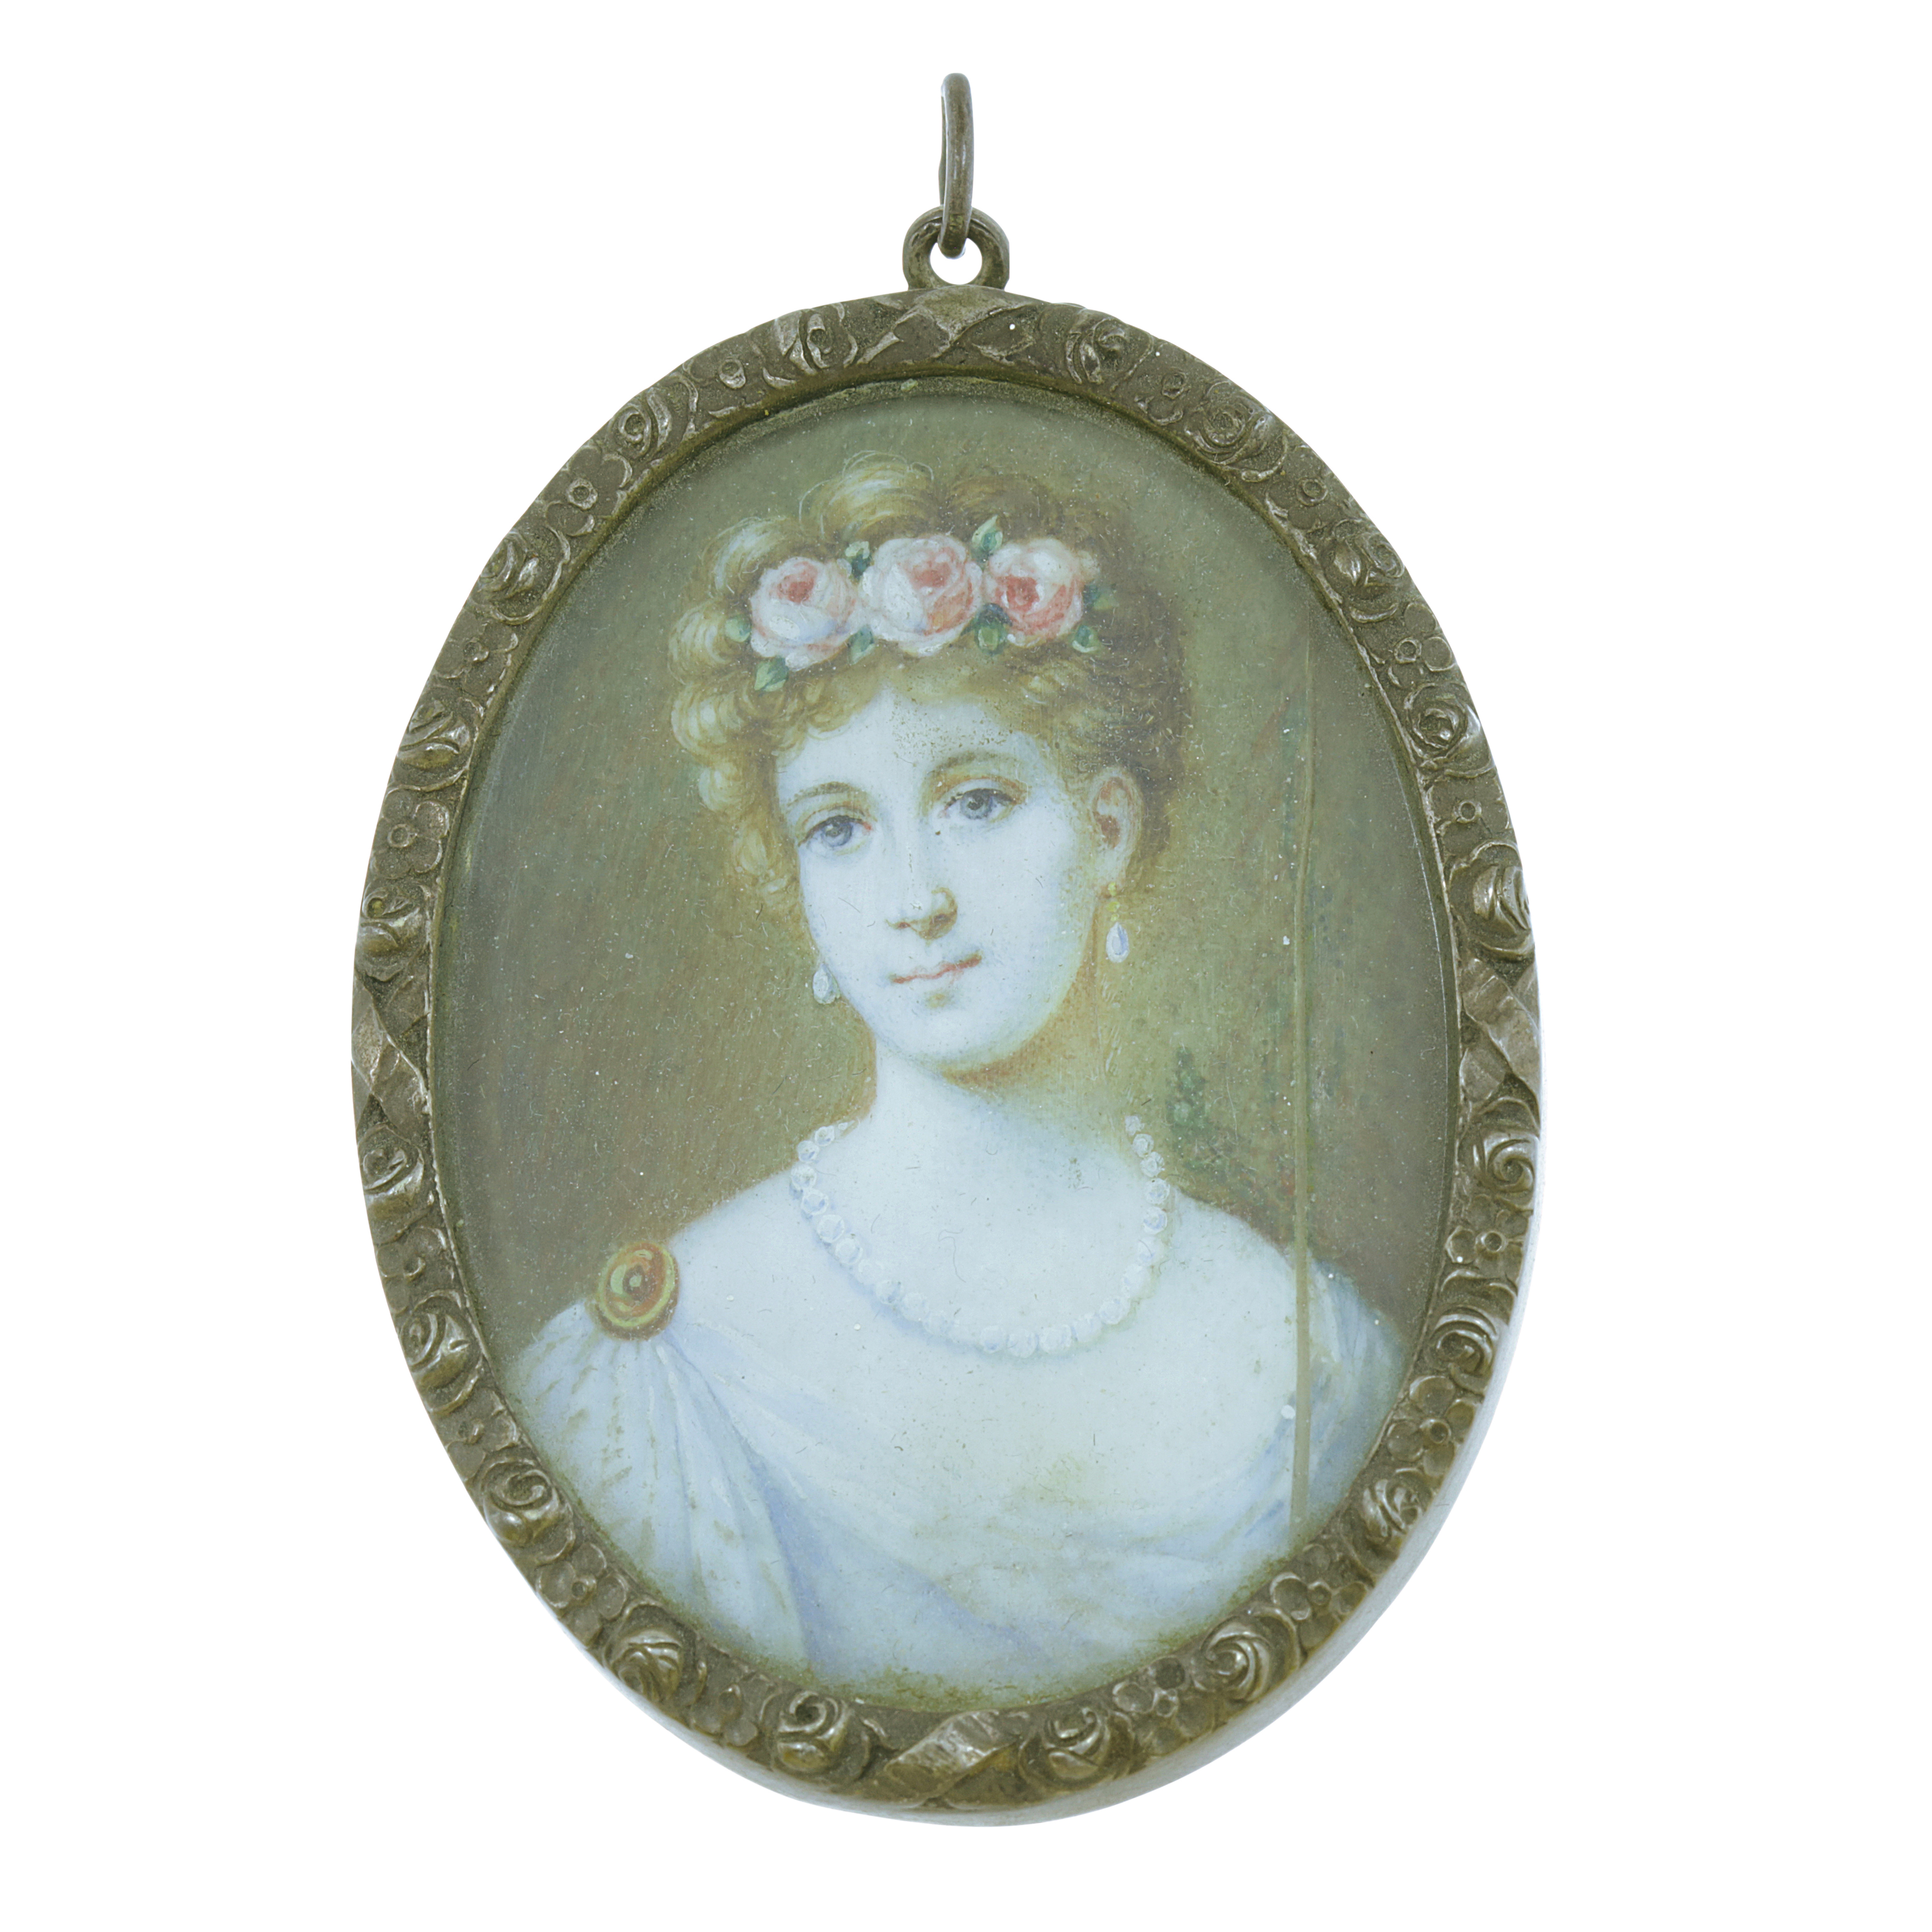 Los 455 - AN ANTIQUE PORTRAIT MINIATURE PENDANT of oval form, the painted ivory miniature depicting a young